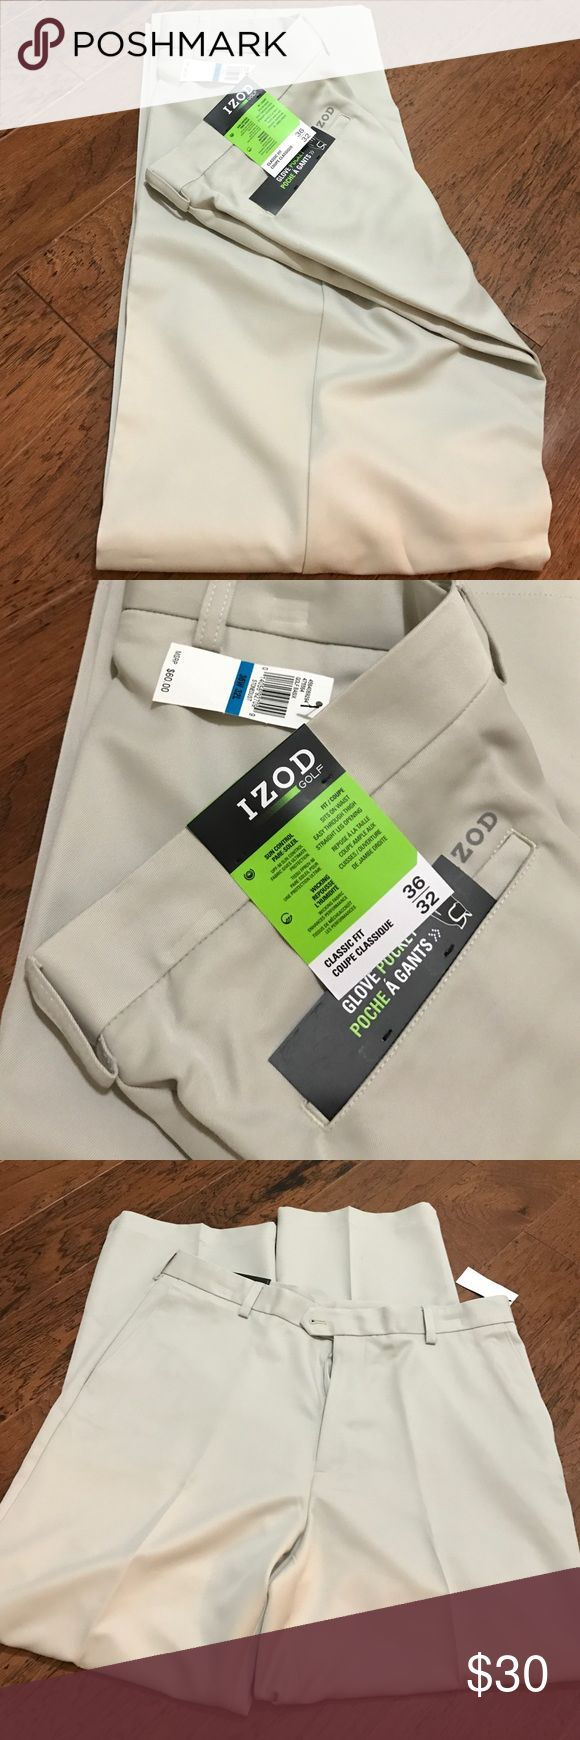 Men's IZOD golf pants Men's NWT light khaki colored classic fit golf pants. Pants feature glove pocket, straight legs, sun control, and moisture wicking fabric. Size 36/32. 100% polyester. 💲Reasonable offers accepted. Izod Pants Chinos & Khakis